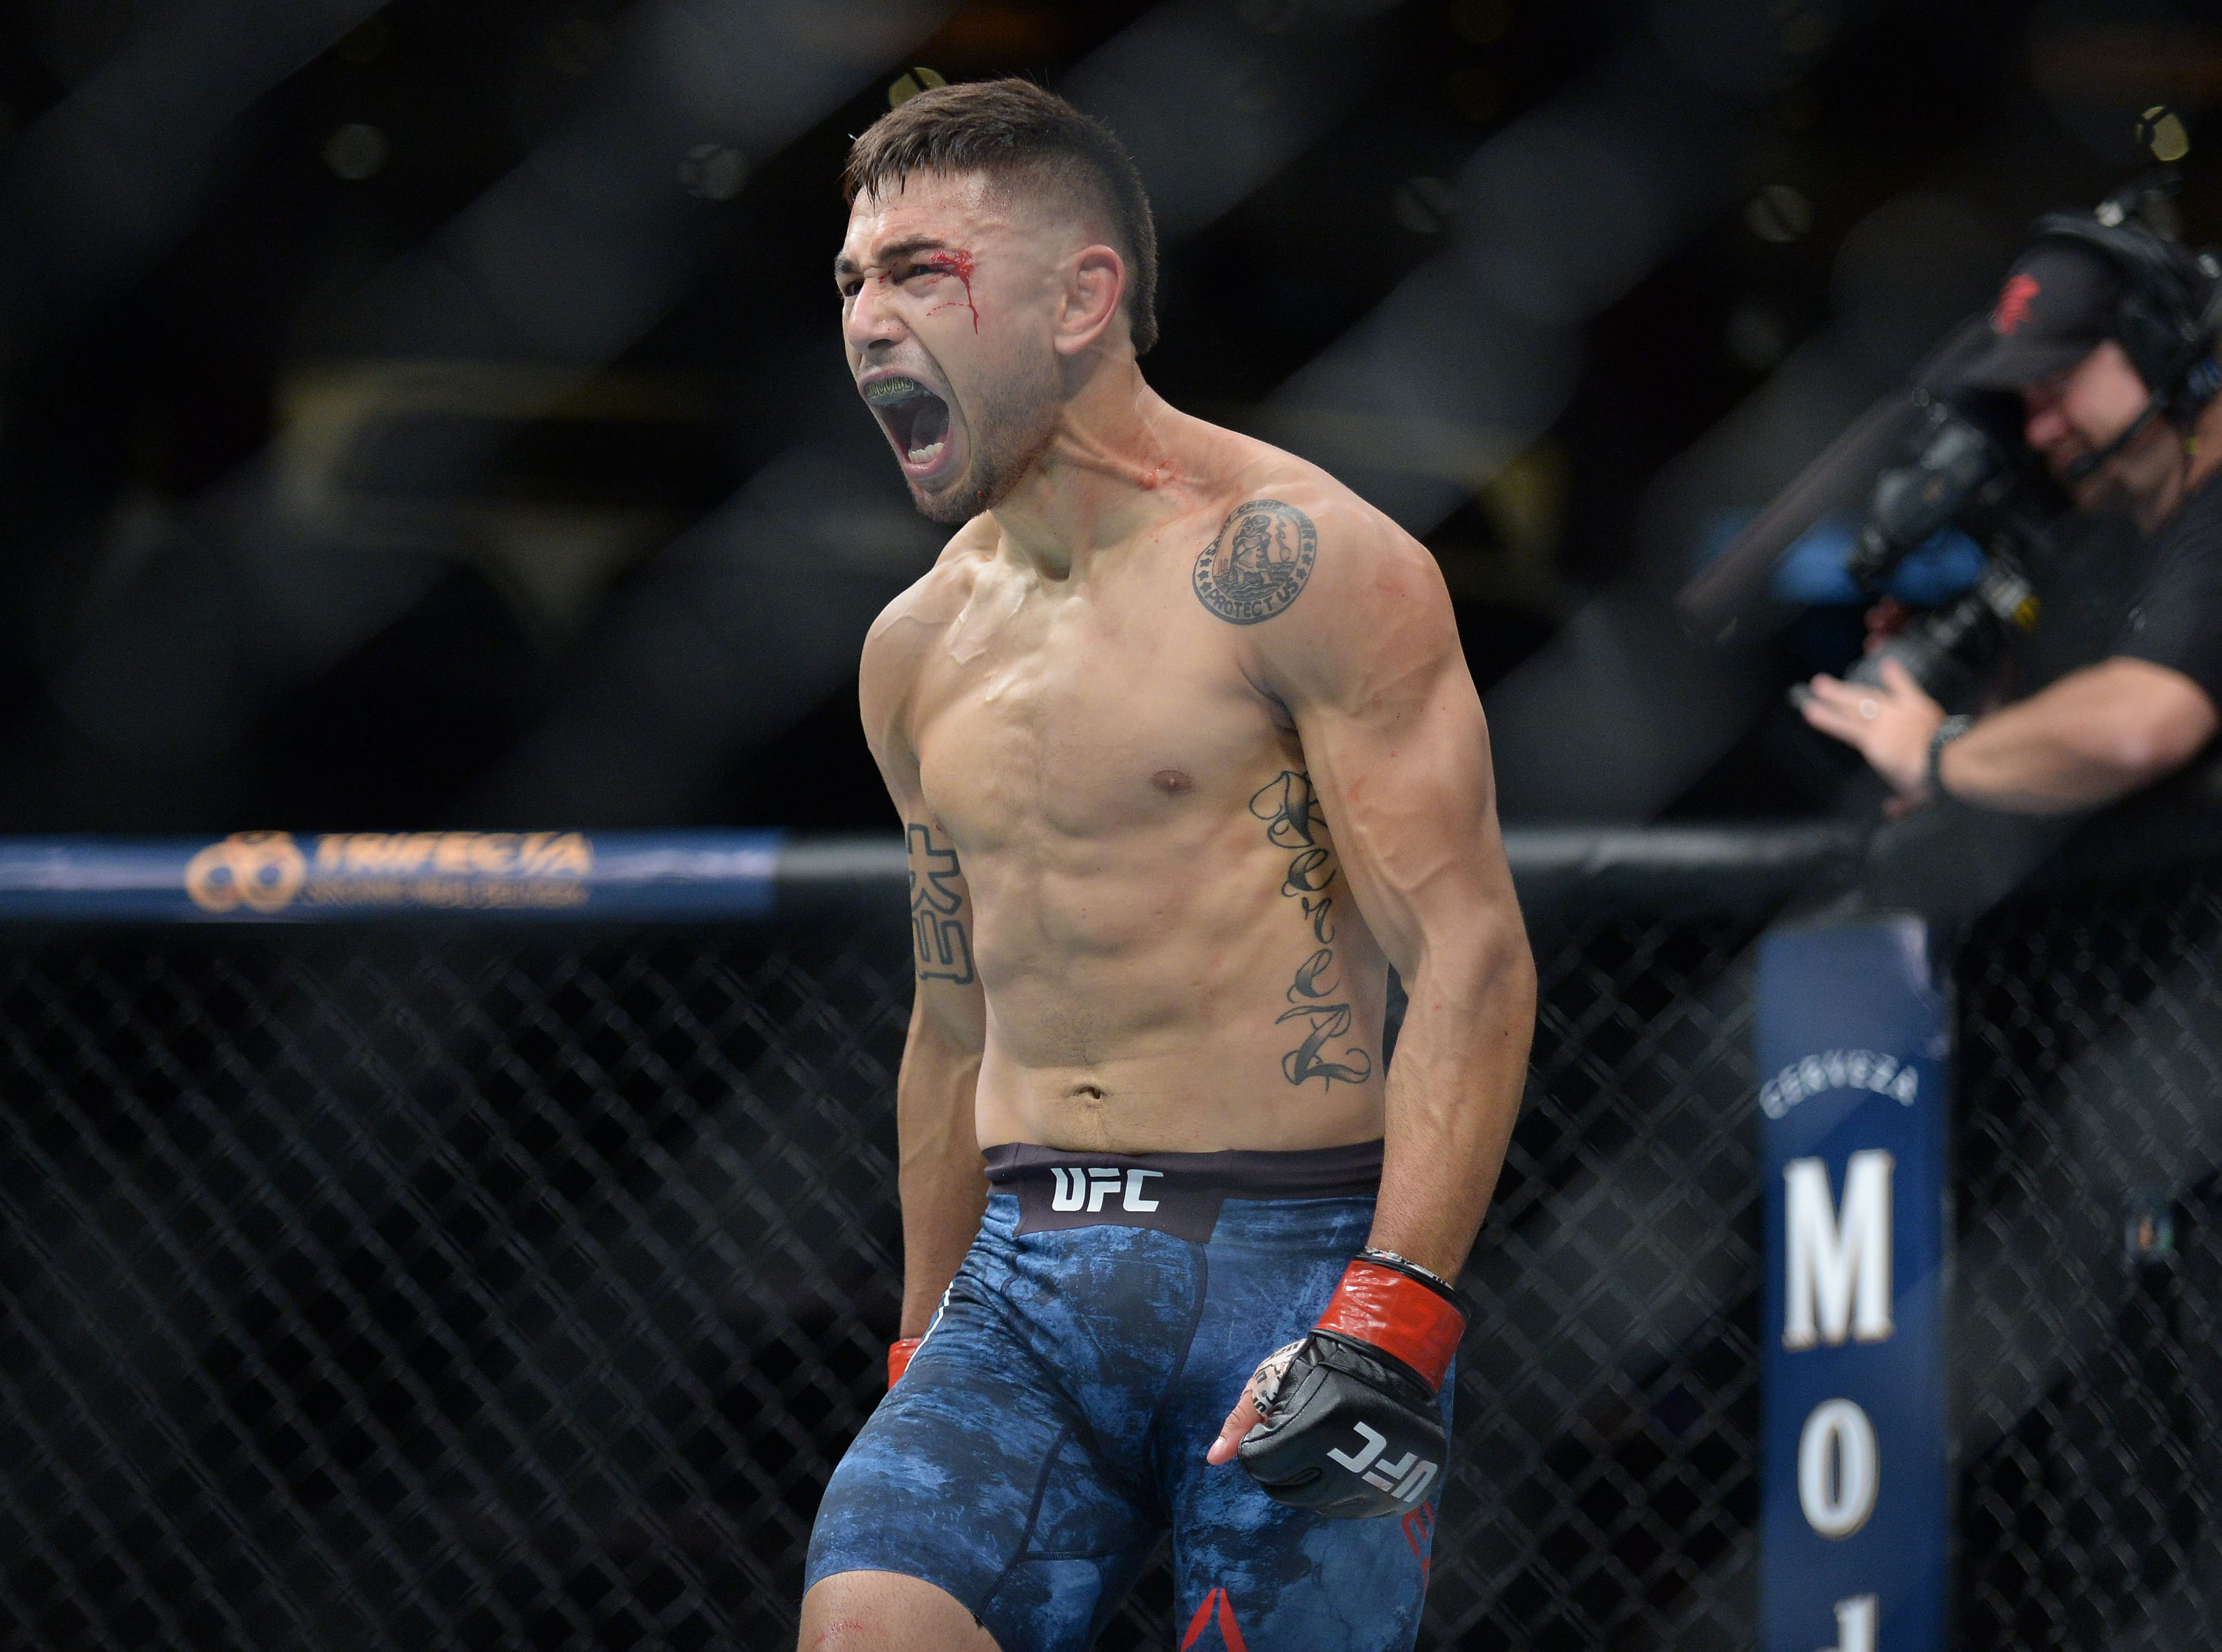 Alex Perez reacts after his knockout victory against Jose Torres during UFC 227 at Staples Center.